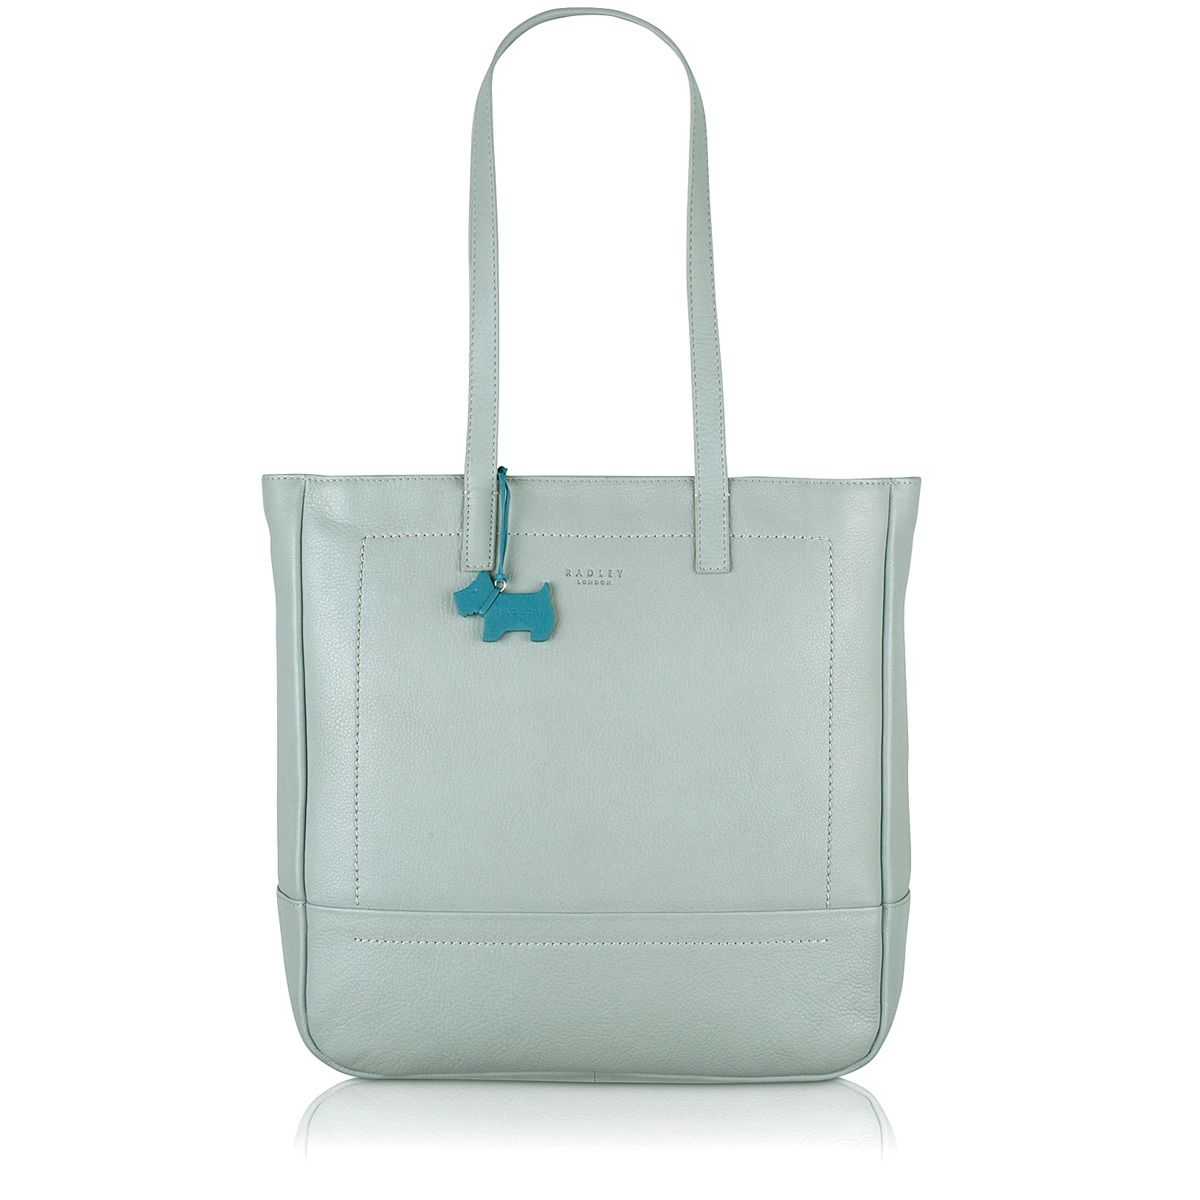 Finsbury large ziptop tote leather blue bag